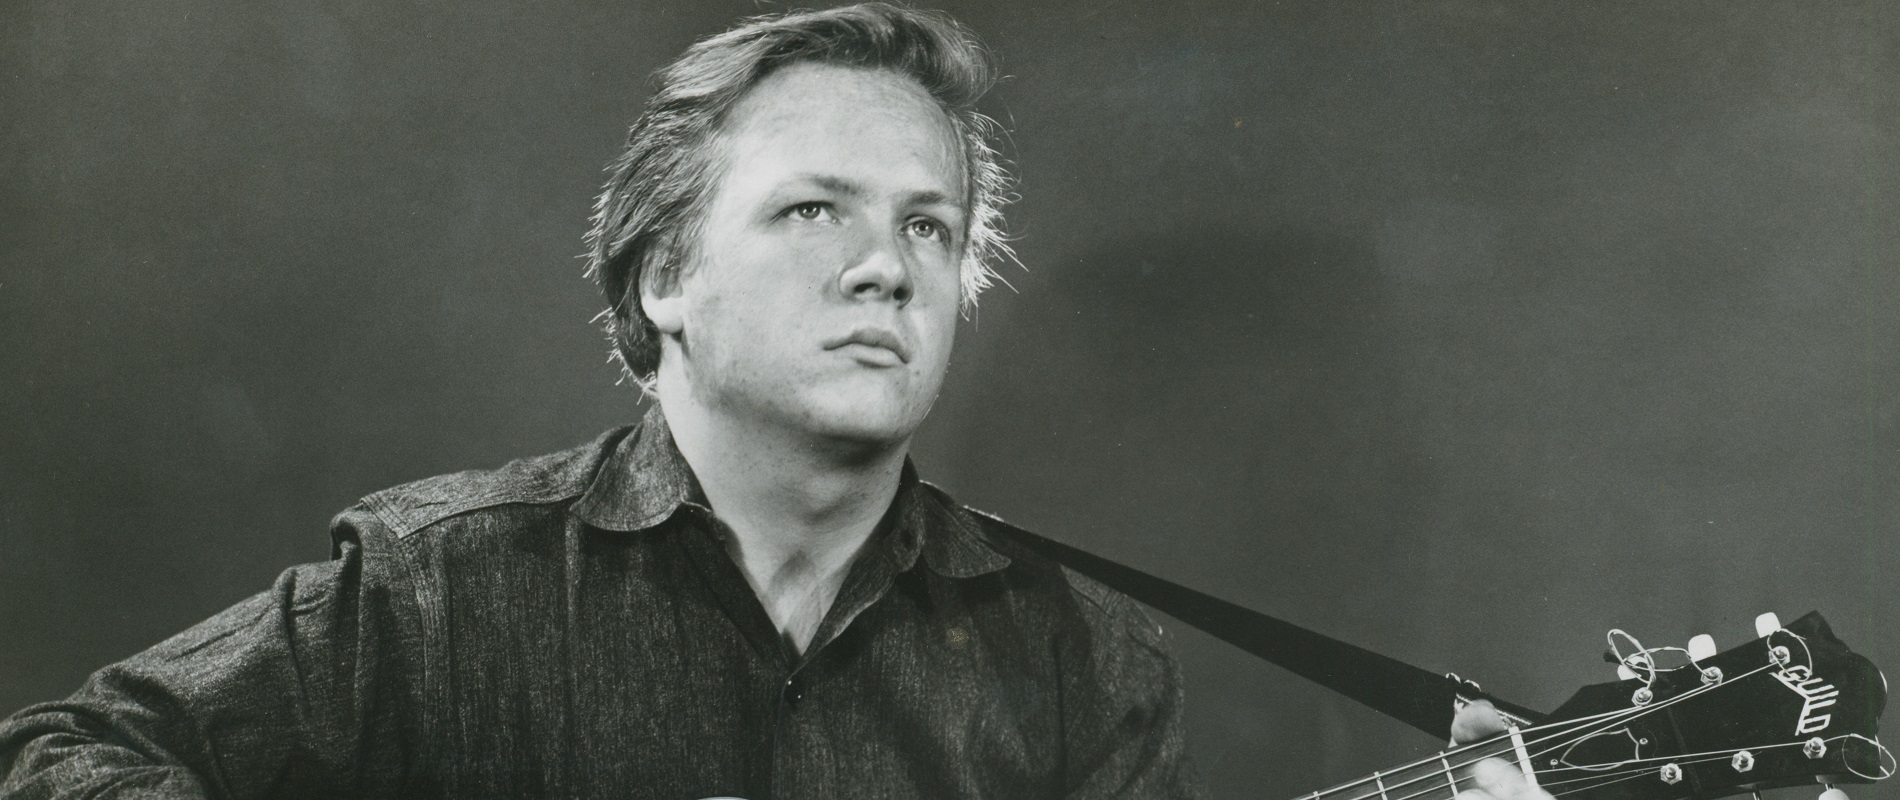 Though Buffalo native Jackson C. Frank was greatly admired by his musical peers and seemed poised for significant notoriety at a young age, he saw little commercial success in his lifetime.